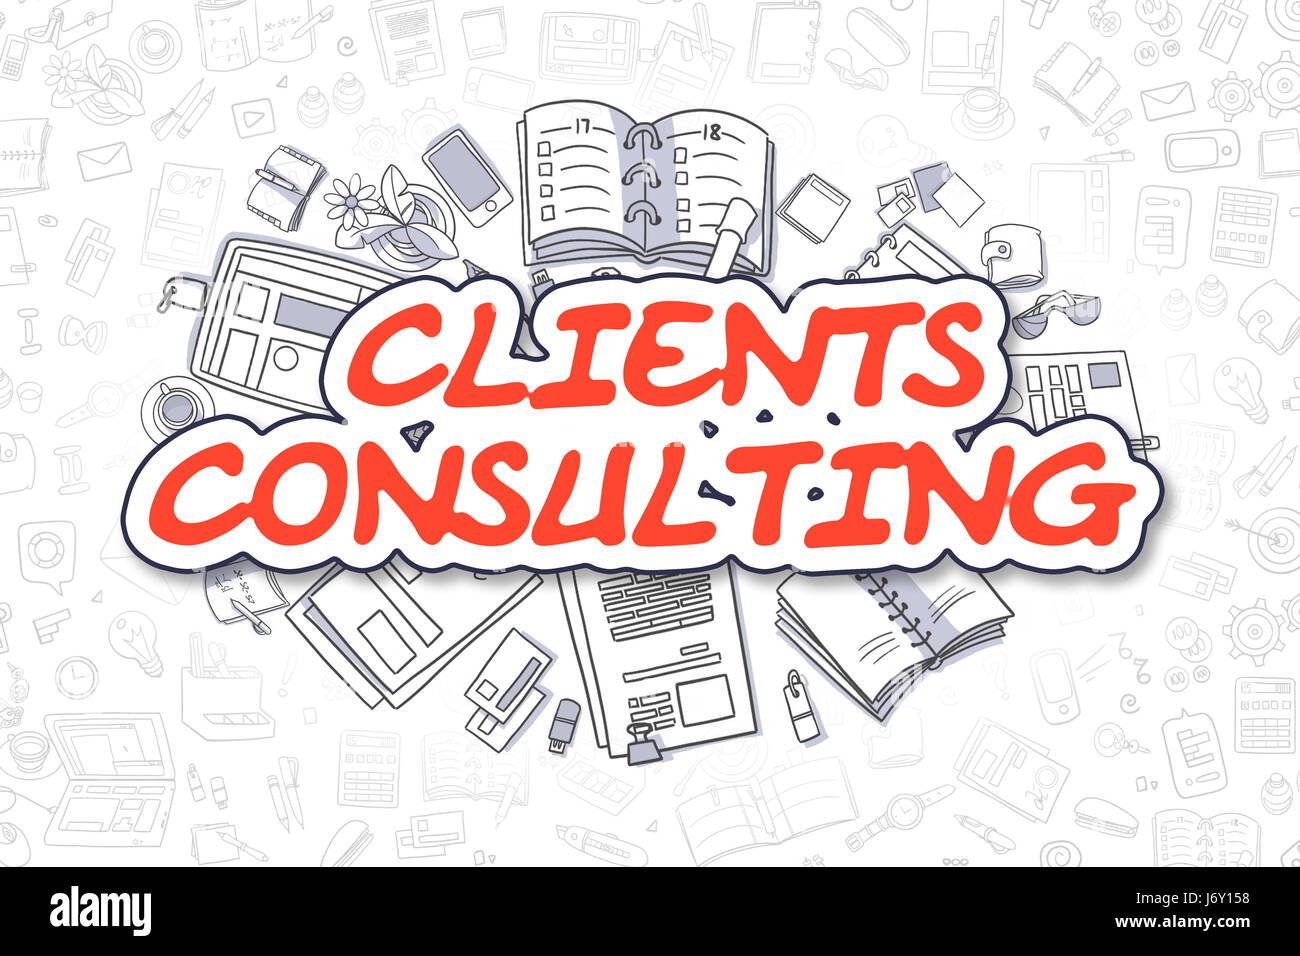 Clients Consulting - Cartoon Red Word. Business Concept. Stock Photo